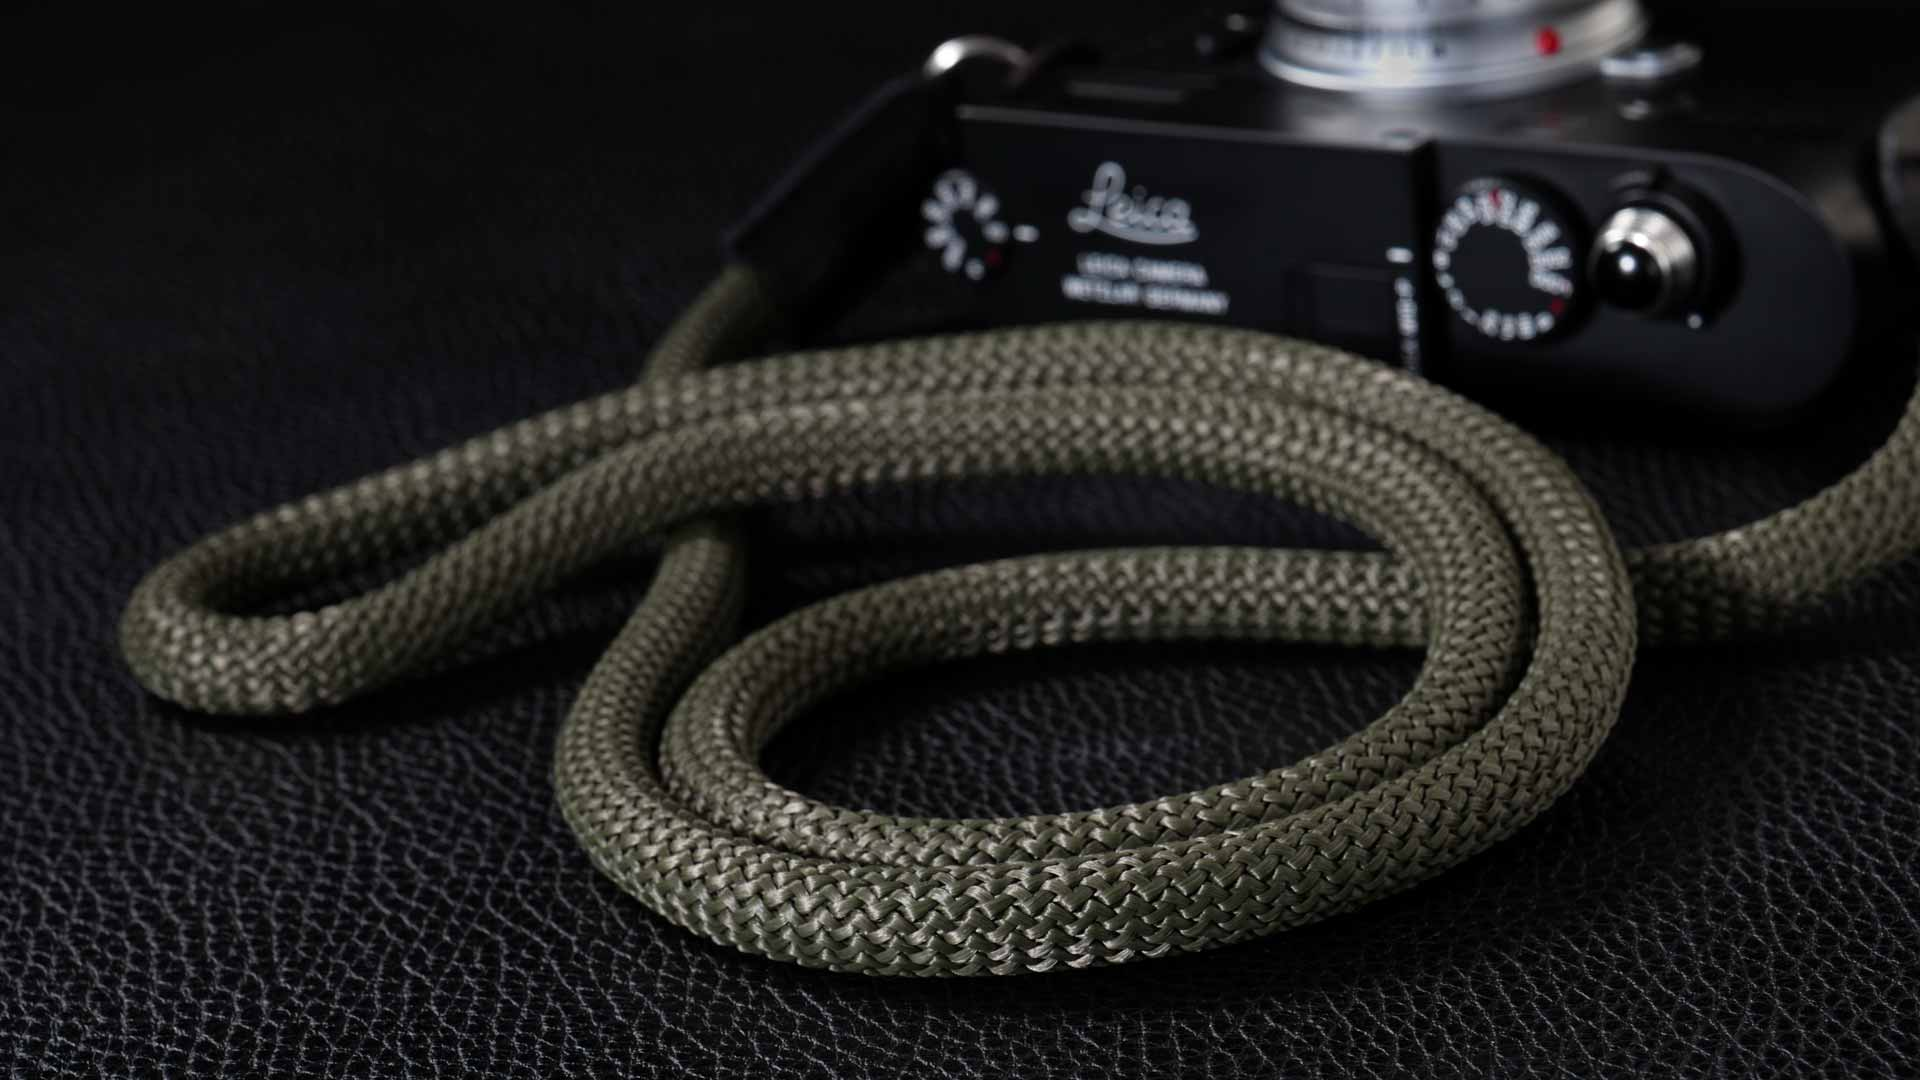 snake strap, rope strap, classic strap, rope camera strap, handmade leather camera strap, leica camera strap, mirrorless camera strap, handmade camera strap, dslr camera strap, safari camera strap